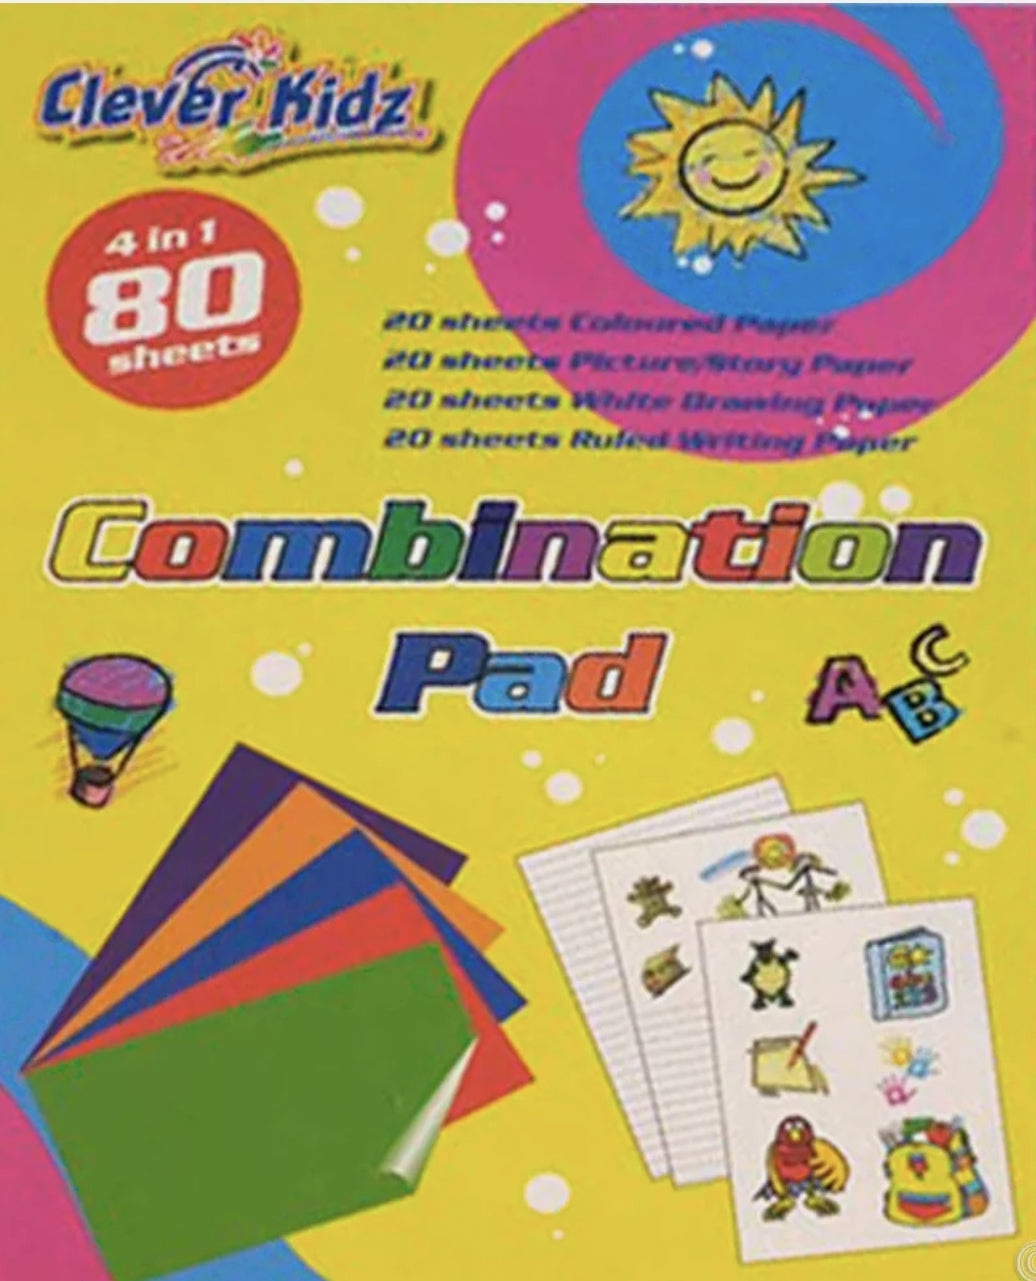 4IN1 240 SHEETS PAPER COMBO STATIONERY PAD COLOURED, WHITE, RULED, PICTURE STORY WRITE